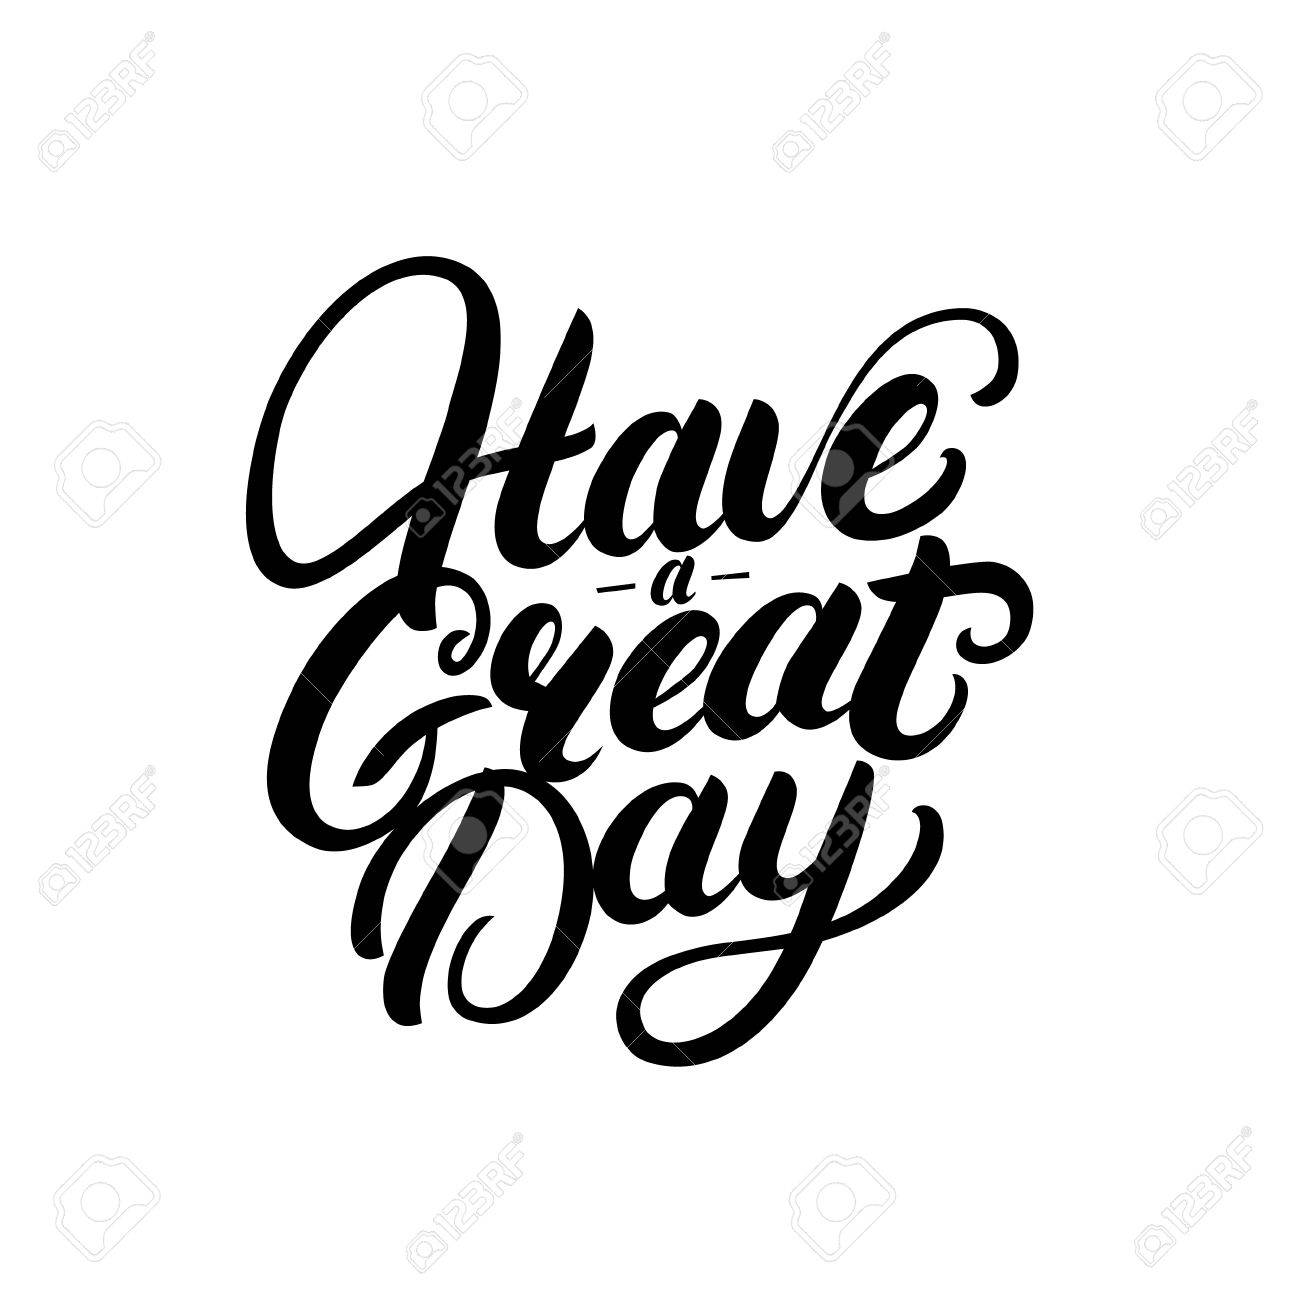 have a great day hand written lettering royalty free cliparts rh 123rf com have a good day animated clipart have a great day animated clipart